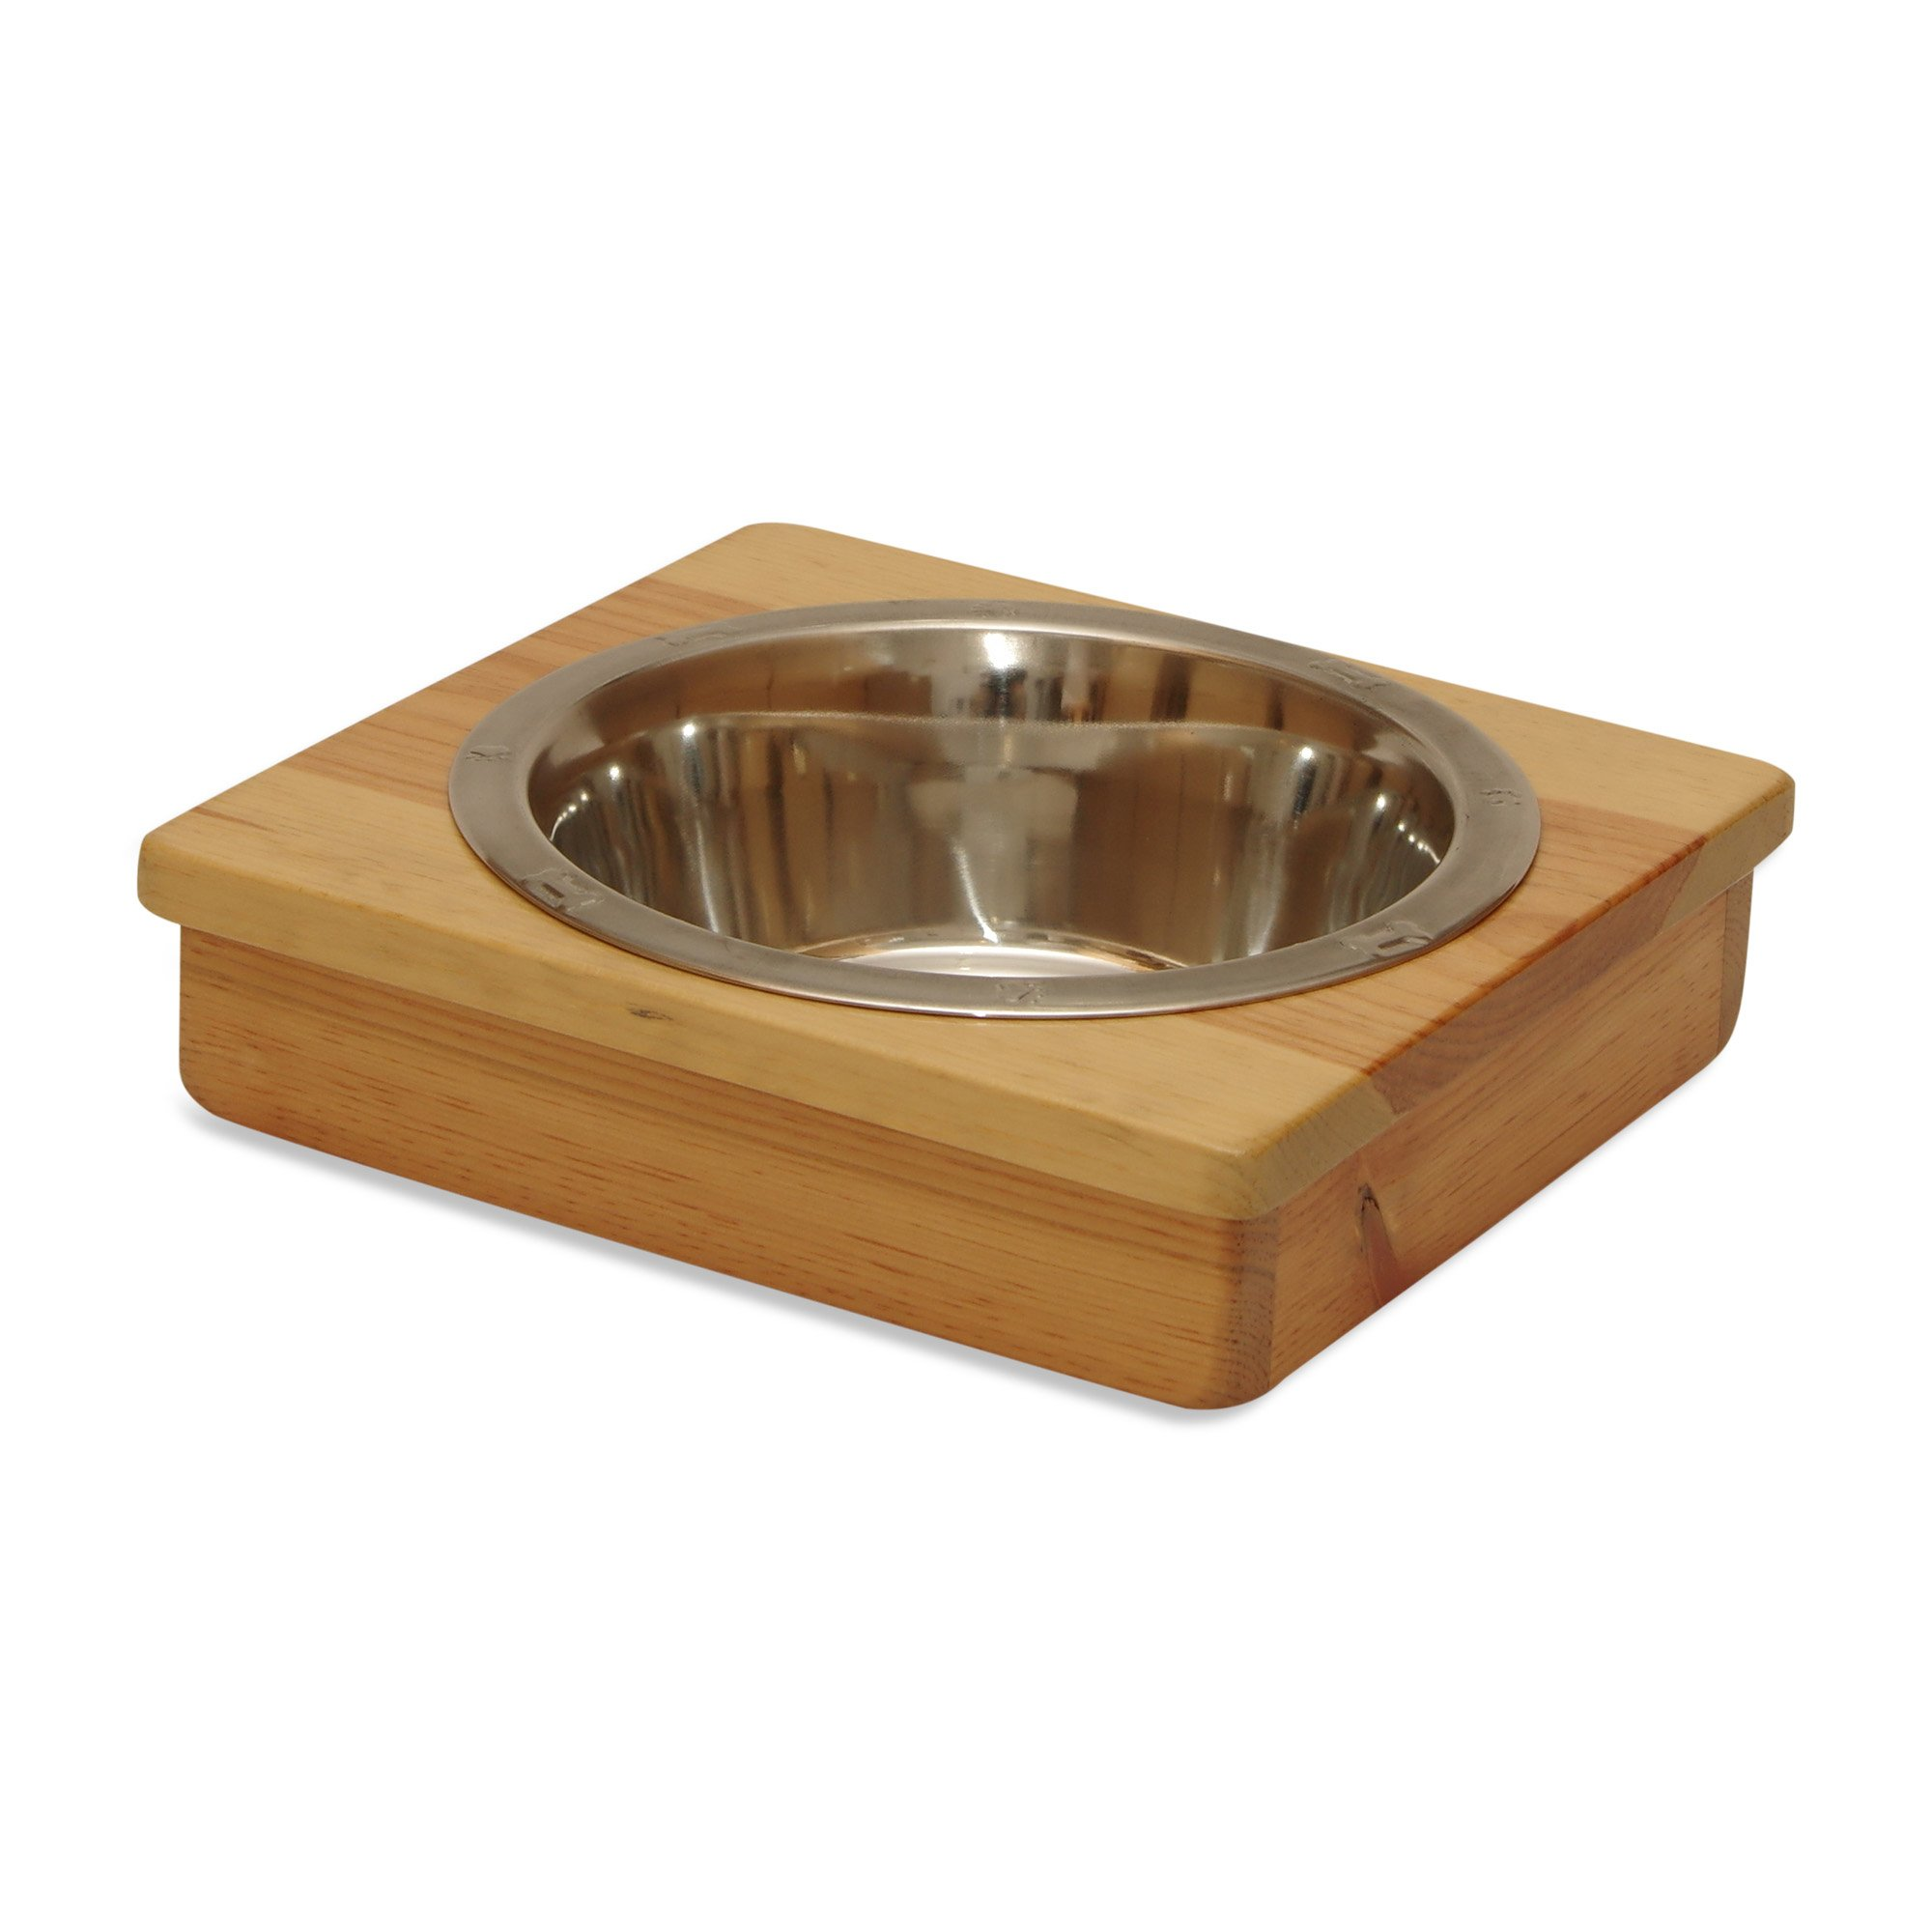 OFTO Raised Dog Single or Double Bowls - Solid Wood Cat and Dog Bowl Stands, with Embossed Stainless Steel Bowl(s) -Large, Medium, and Universal Sizes - Eco-Friendly and Non-Toxic - Made in the USA by OFTO